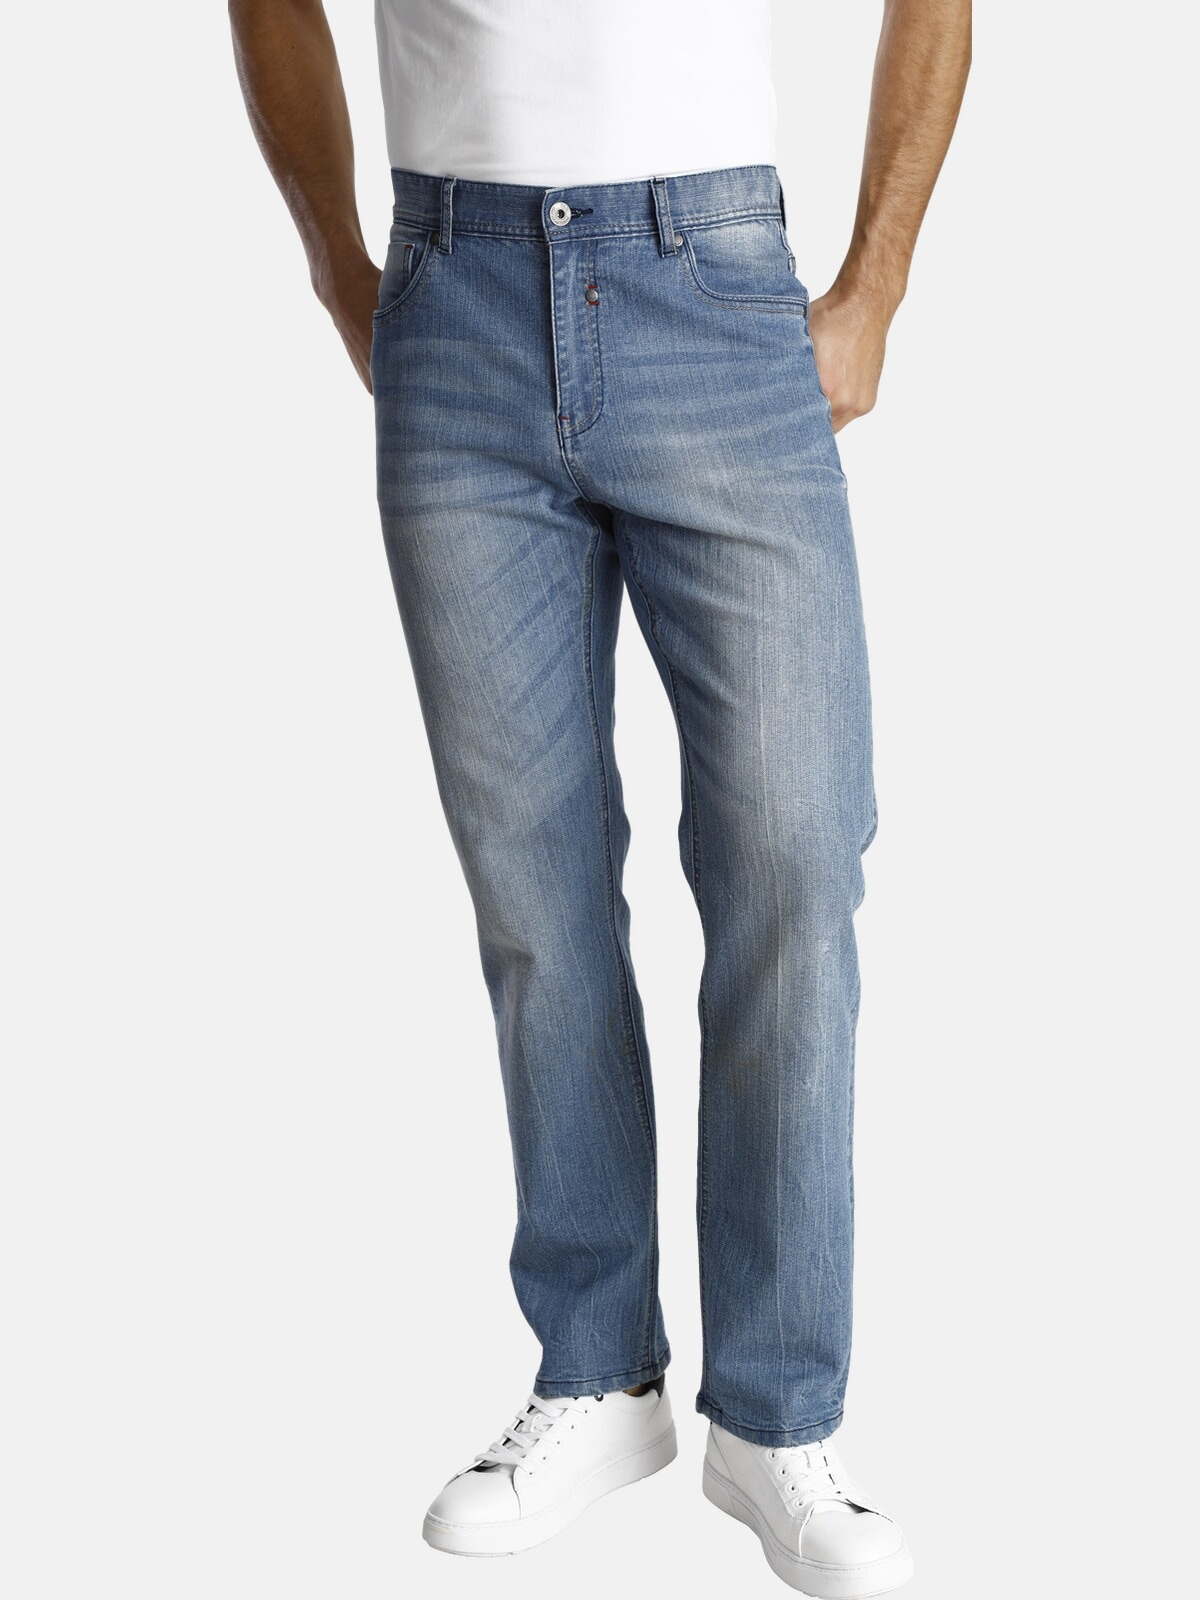 Jan Vanderstorm 5-Pocket-Jeans »HALLTHOR« von Jan Vanderstorm